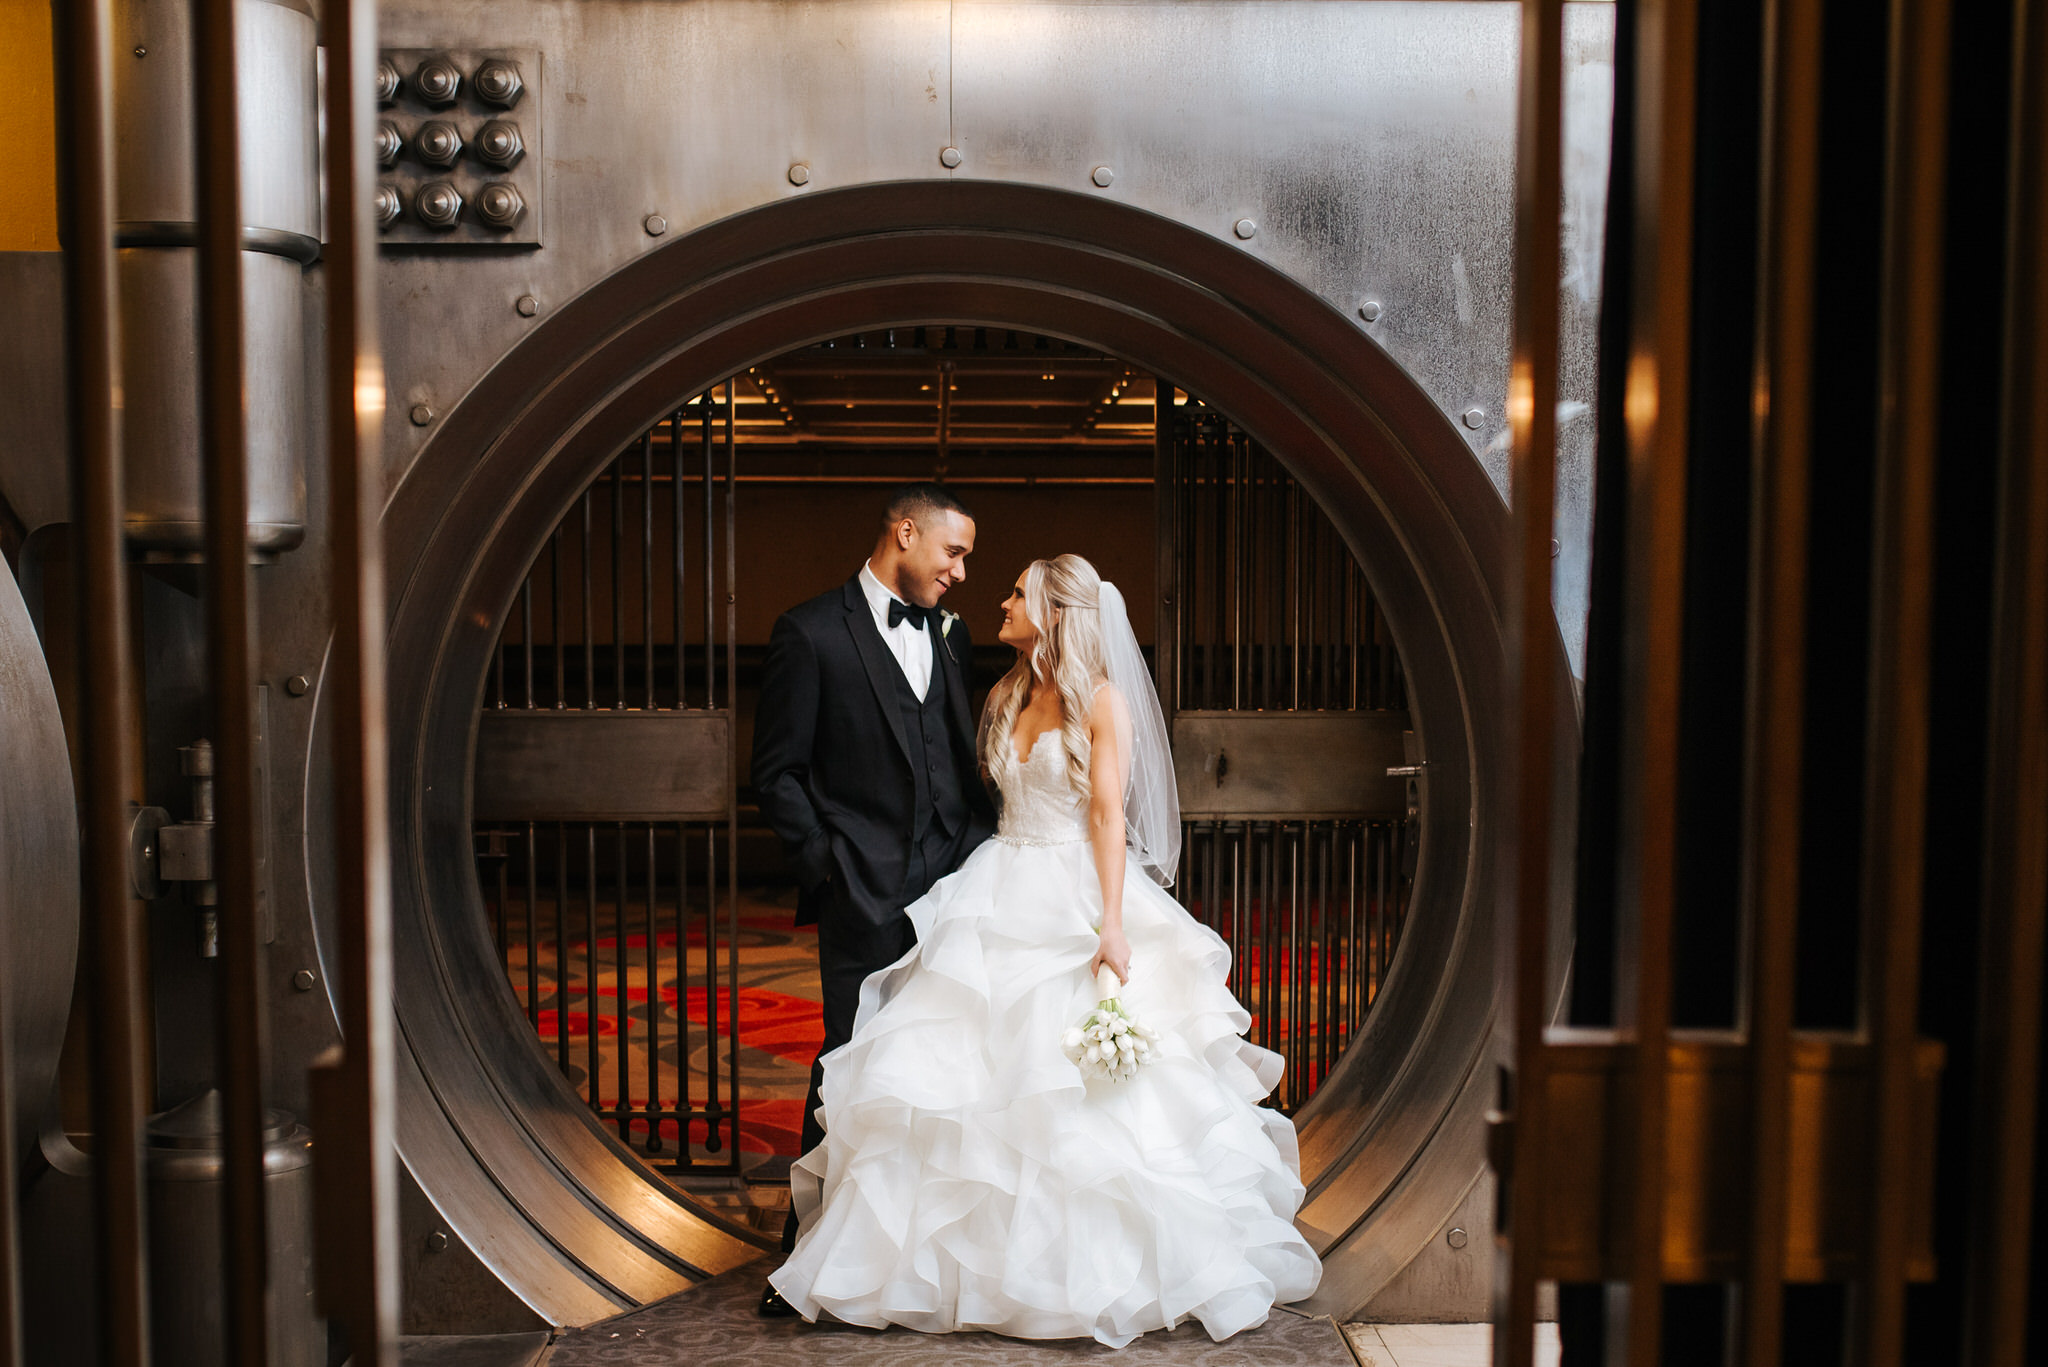 One King Toronto New Years Eve Wedding - portrait in the vault